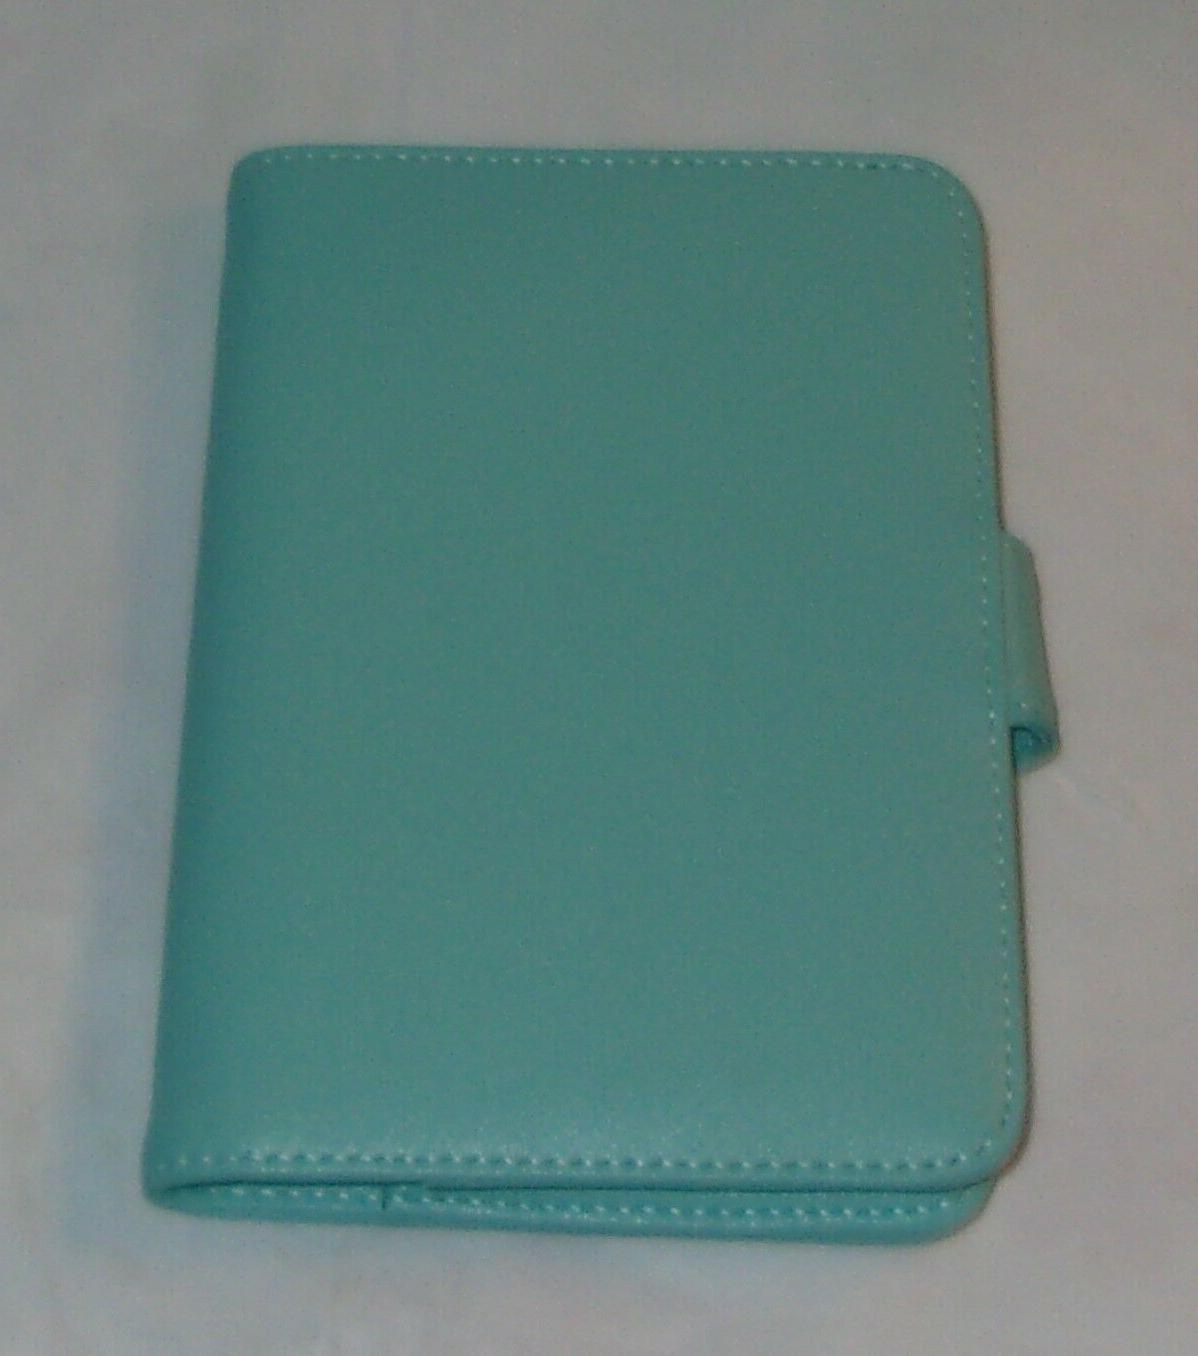 New Passport Holder Cover Card Case - Light Free Shipping